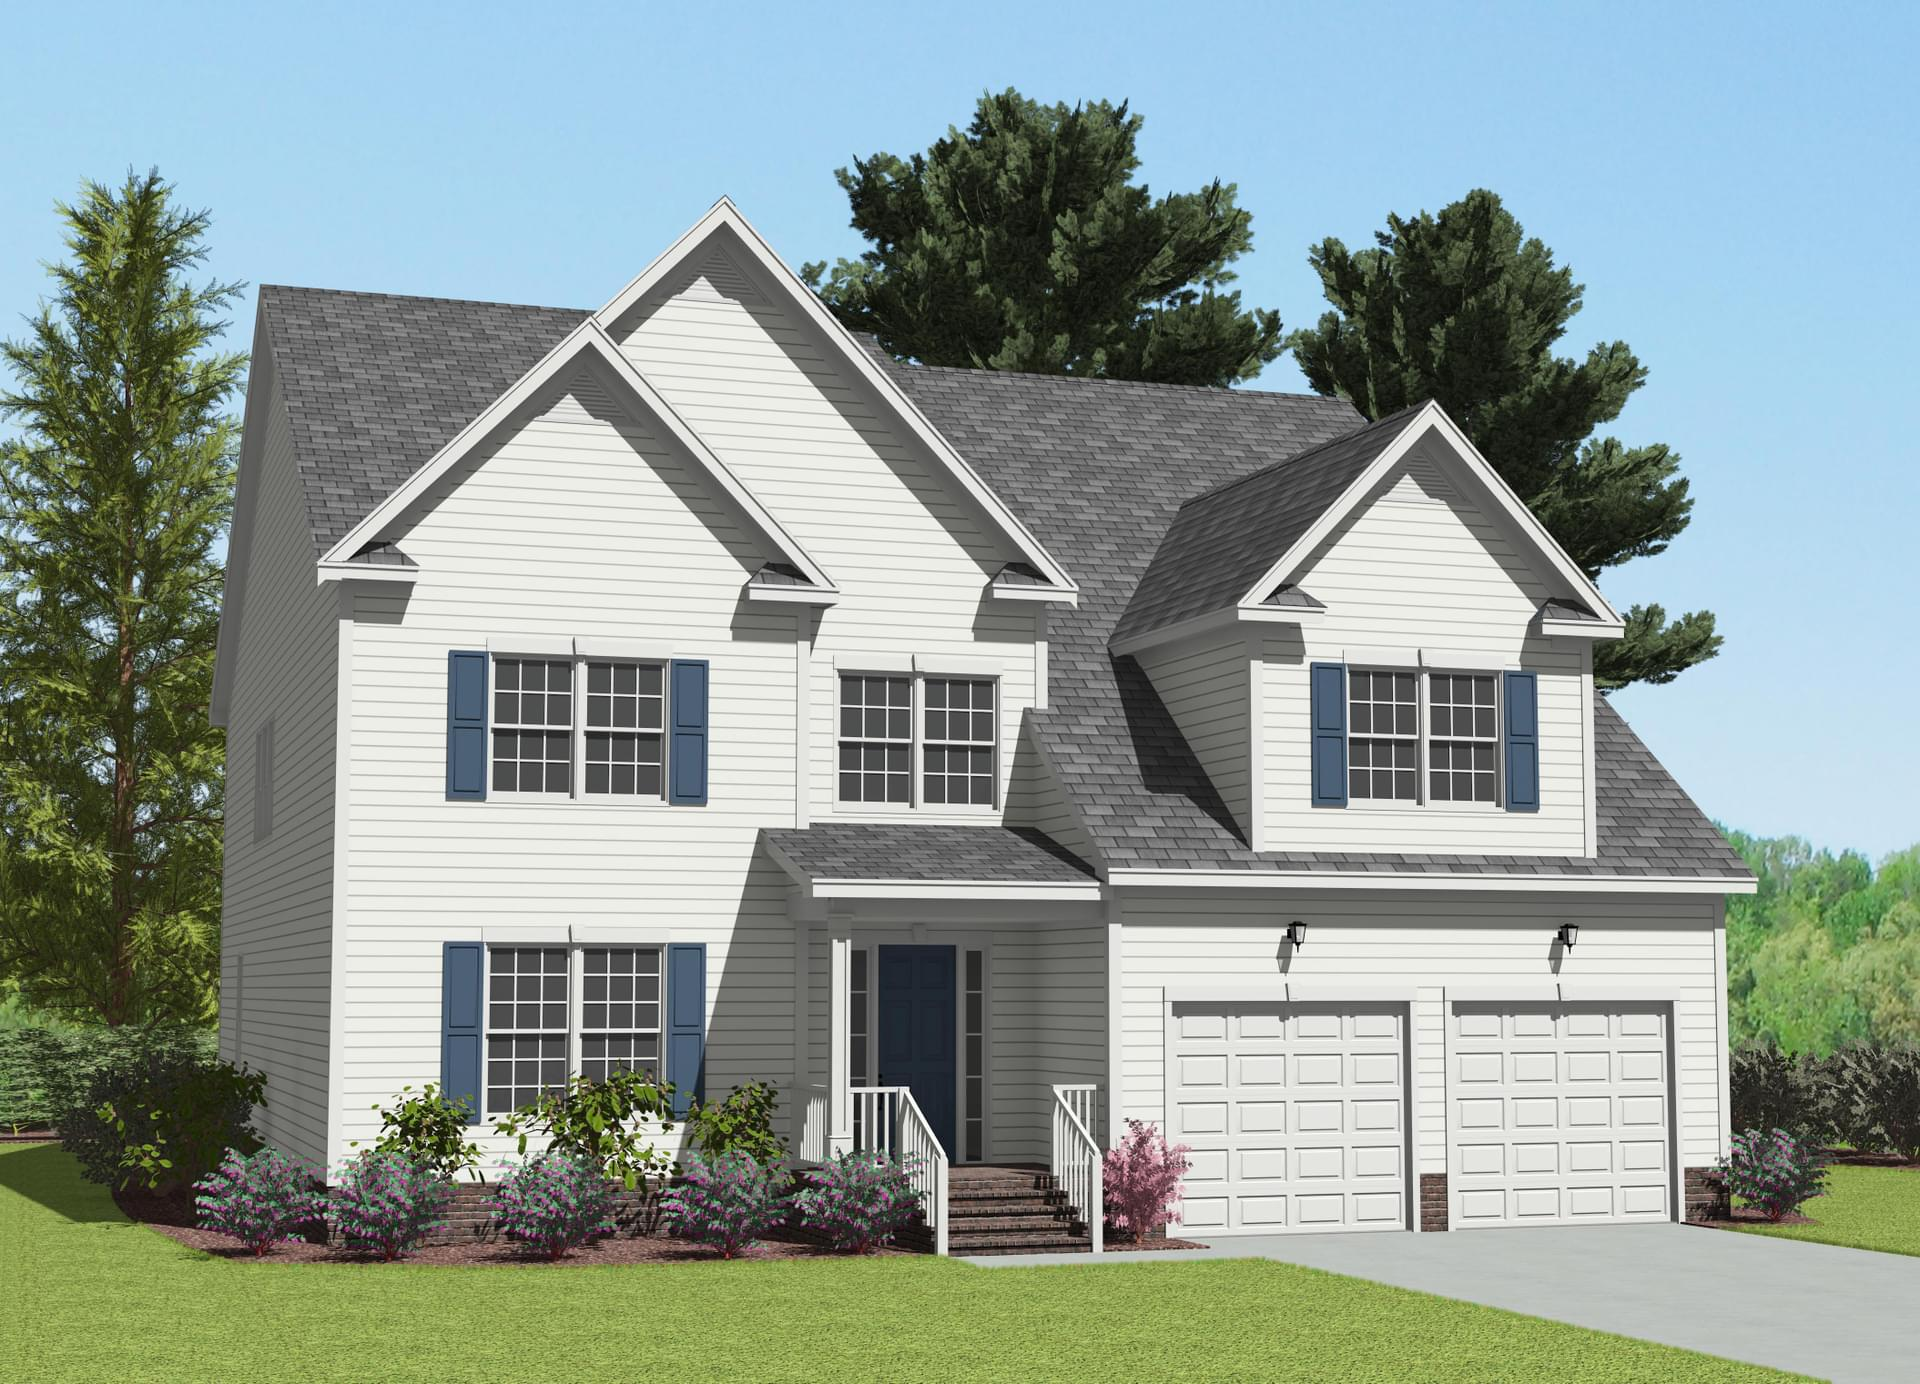 Morehead New Home in Cary